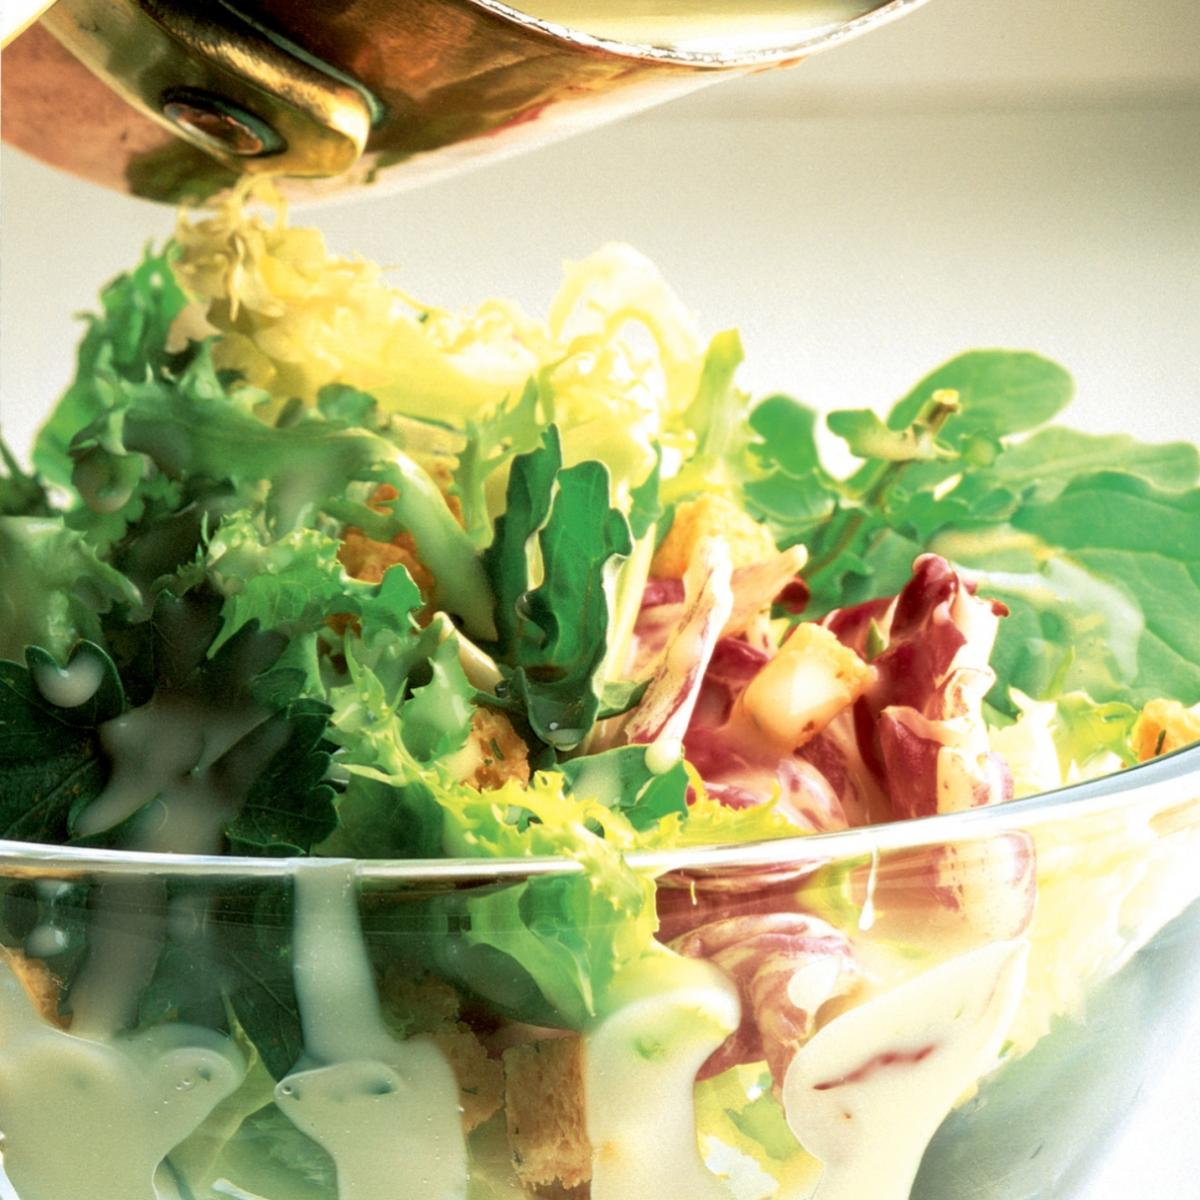 Vegetarian food recipes delia online a picture of delias apple cider salad with melted camembert dressing recipe forumfinder Choice Image